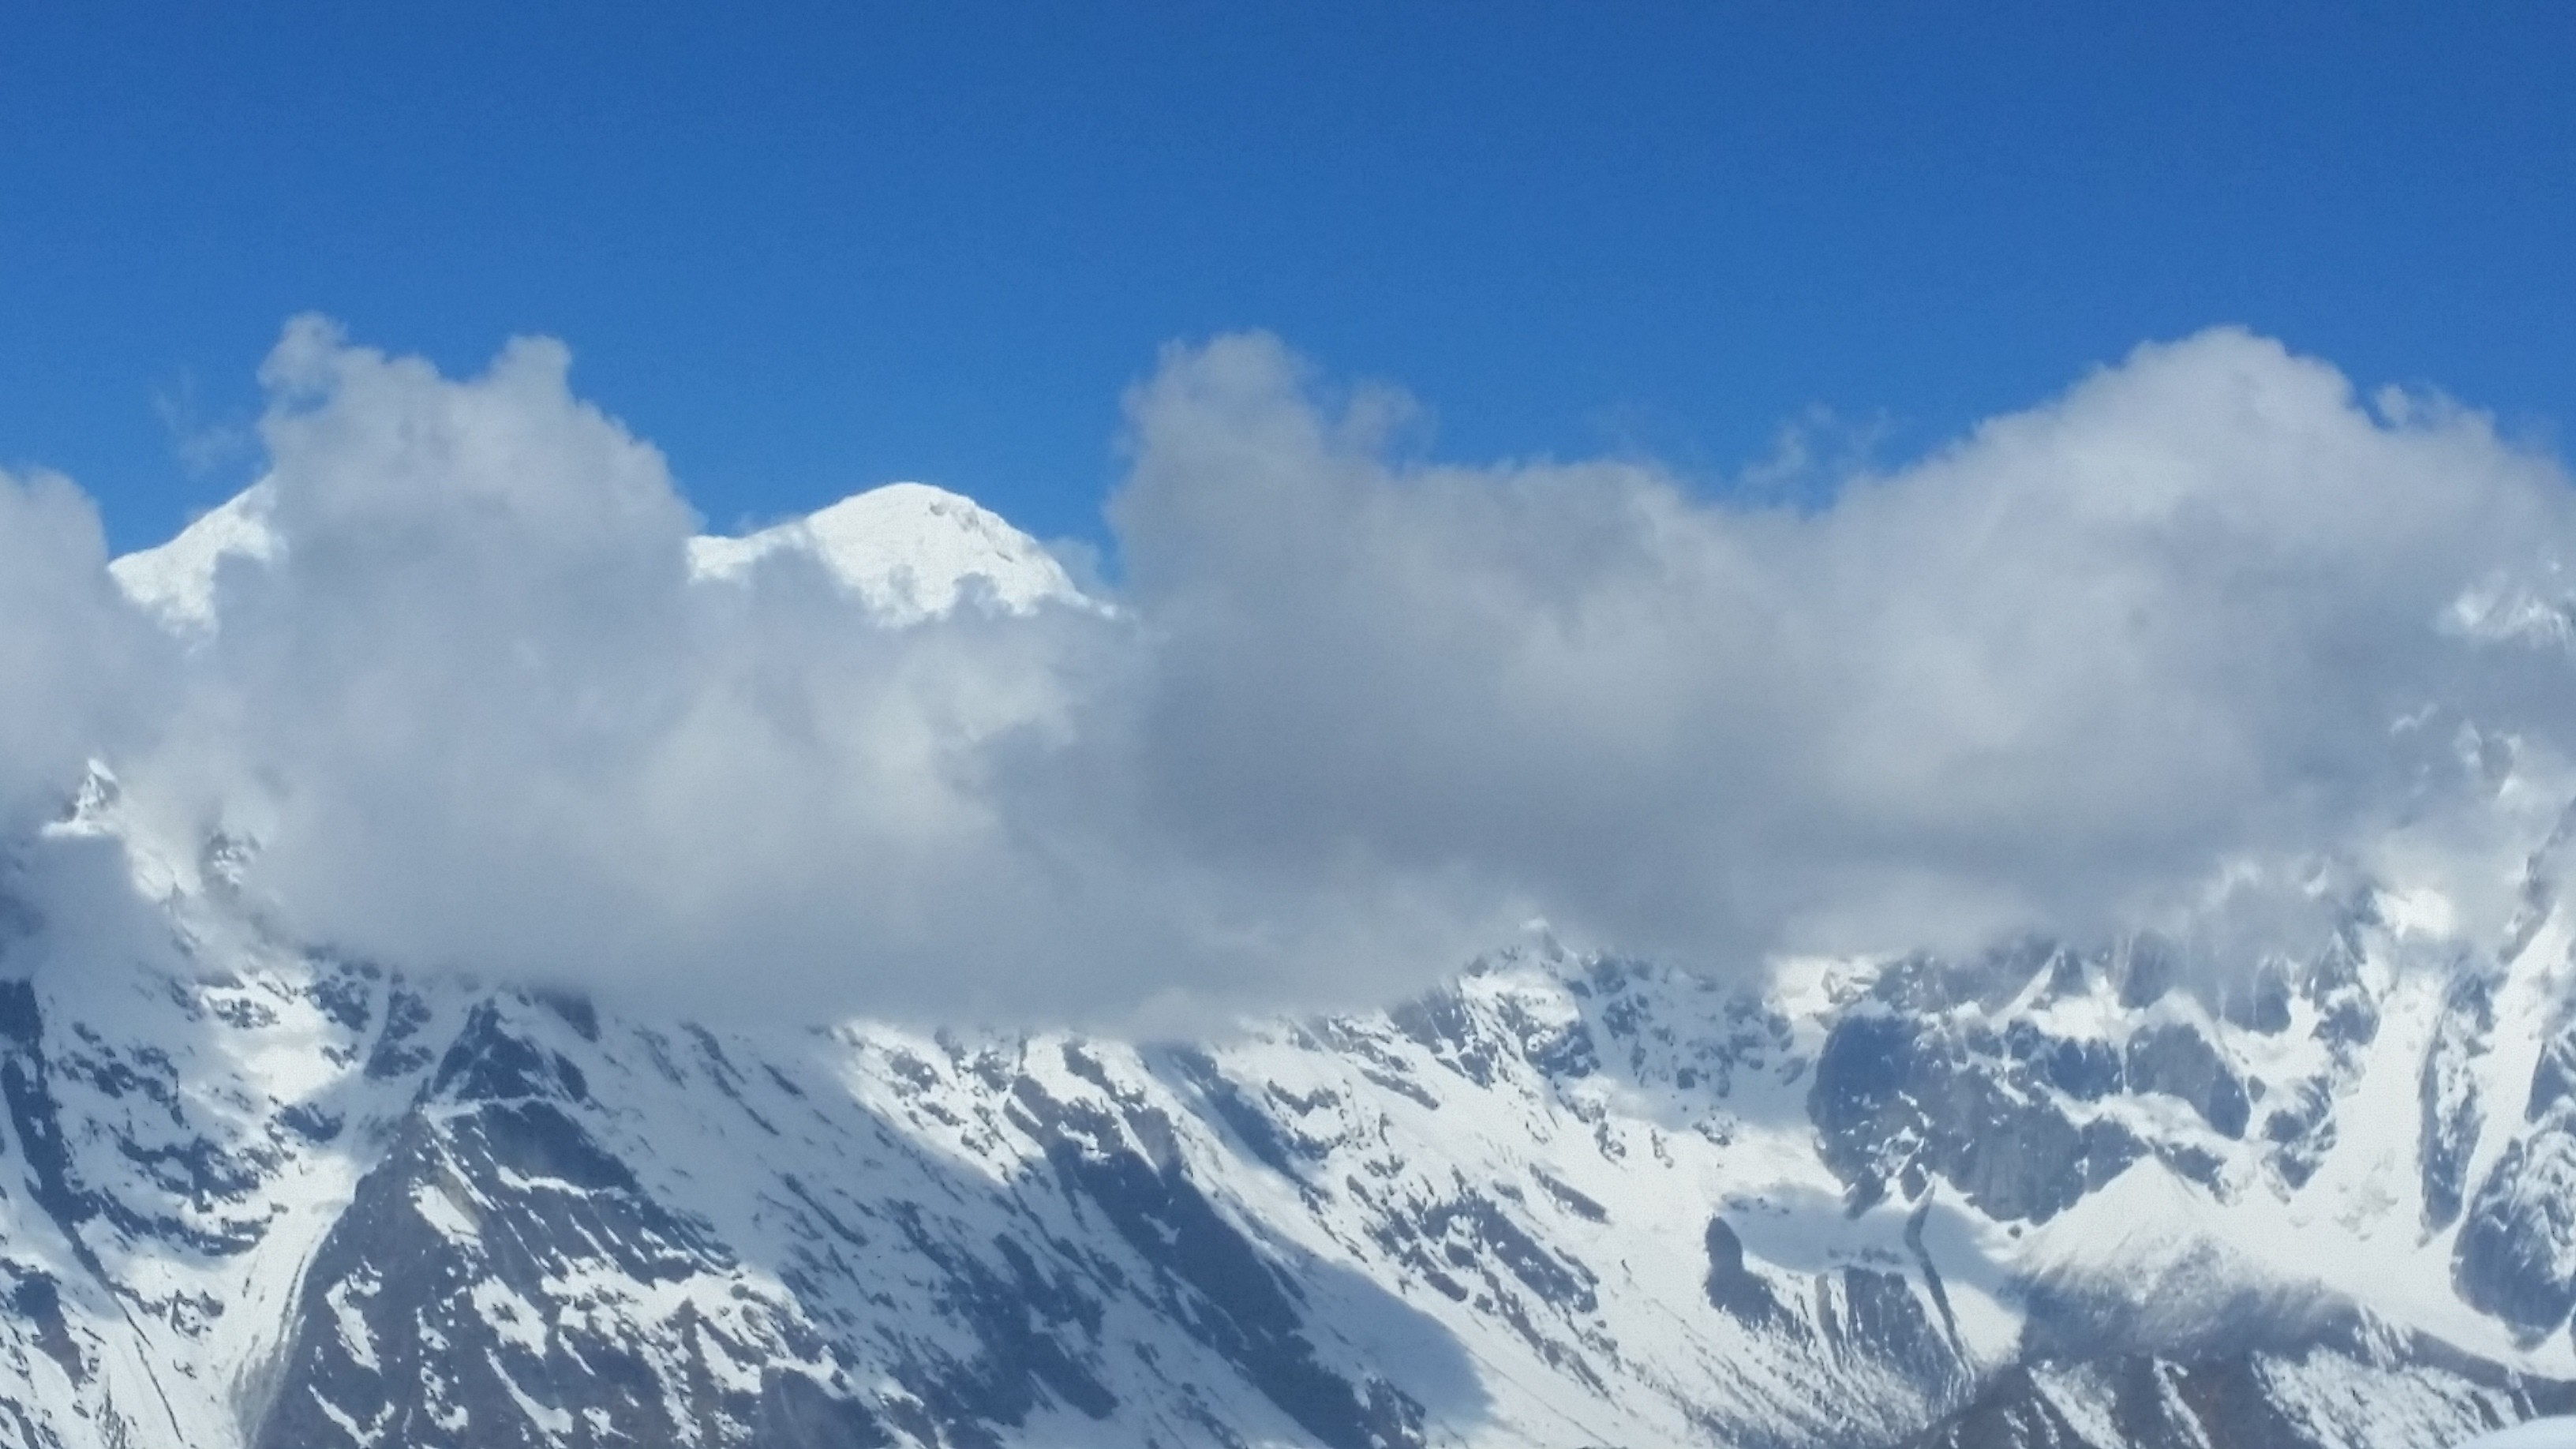 Manaslu Trekking: Himalaya with cloud